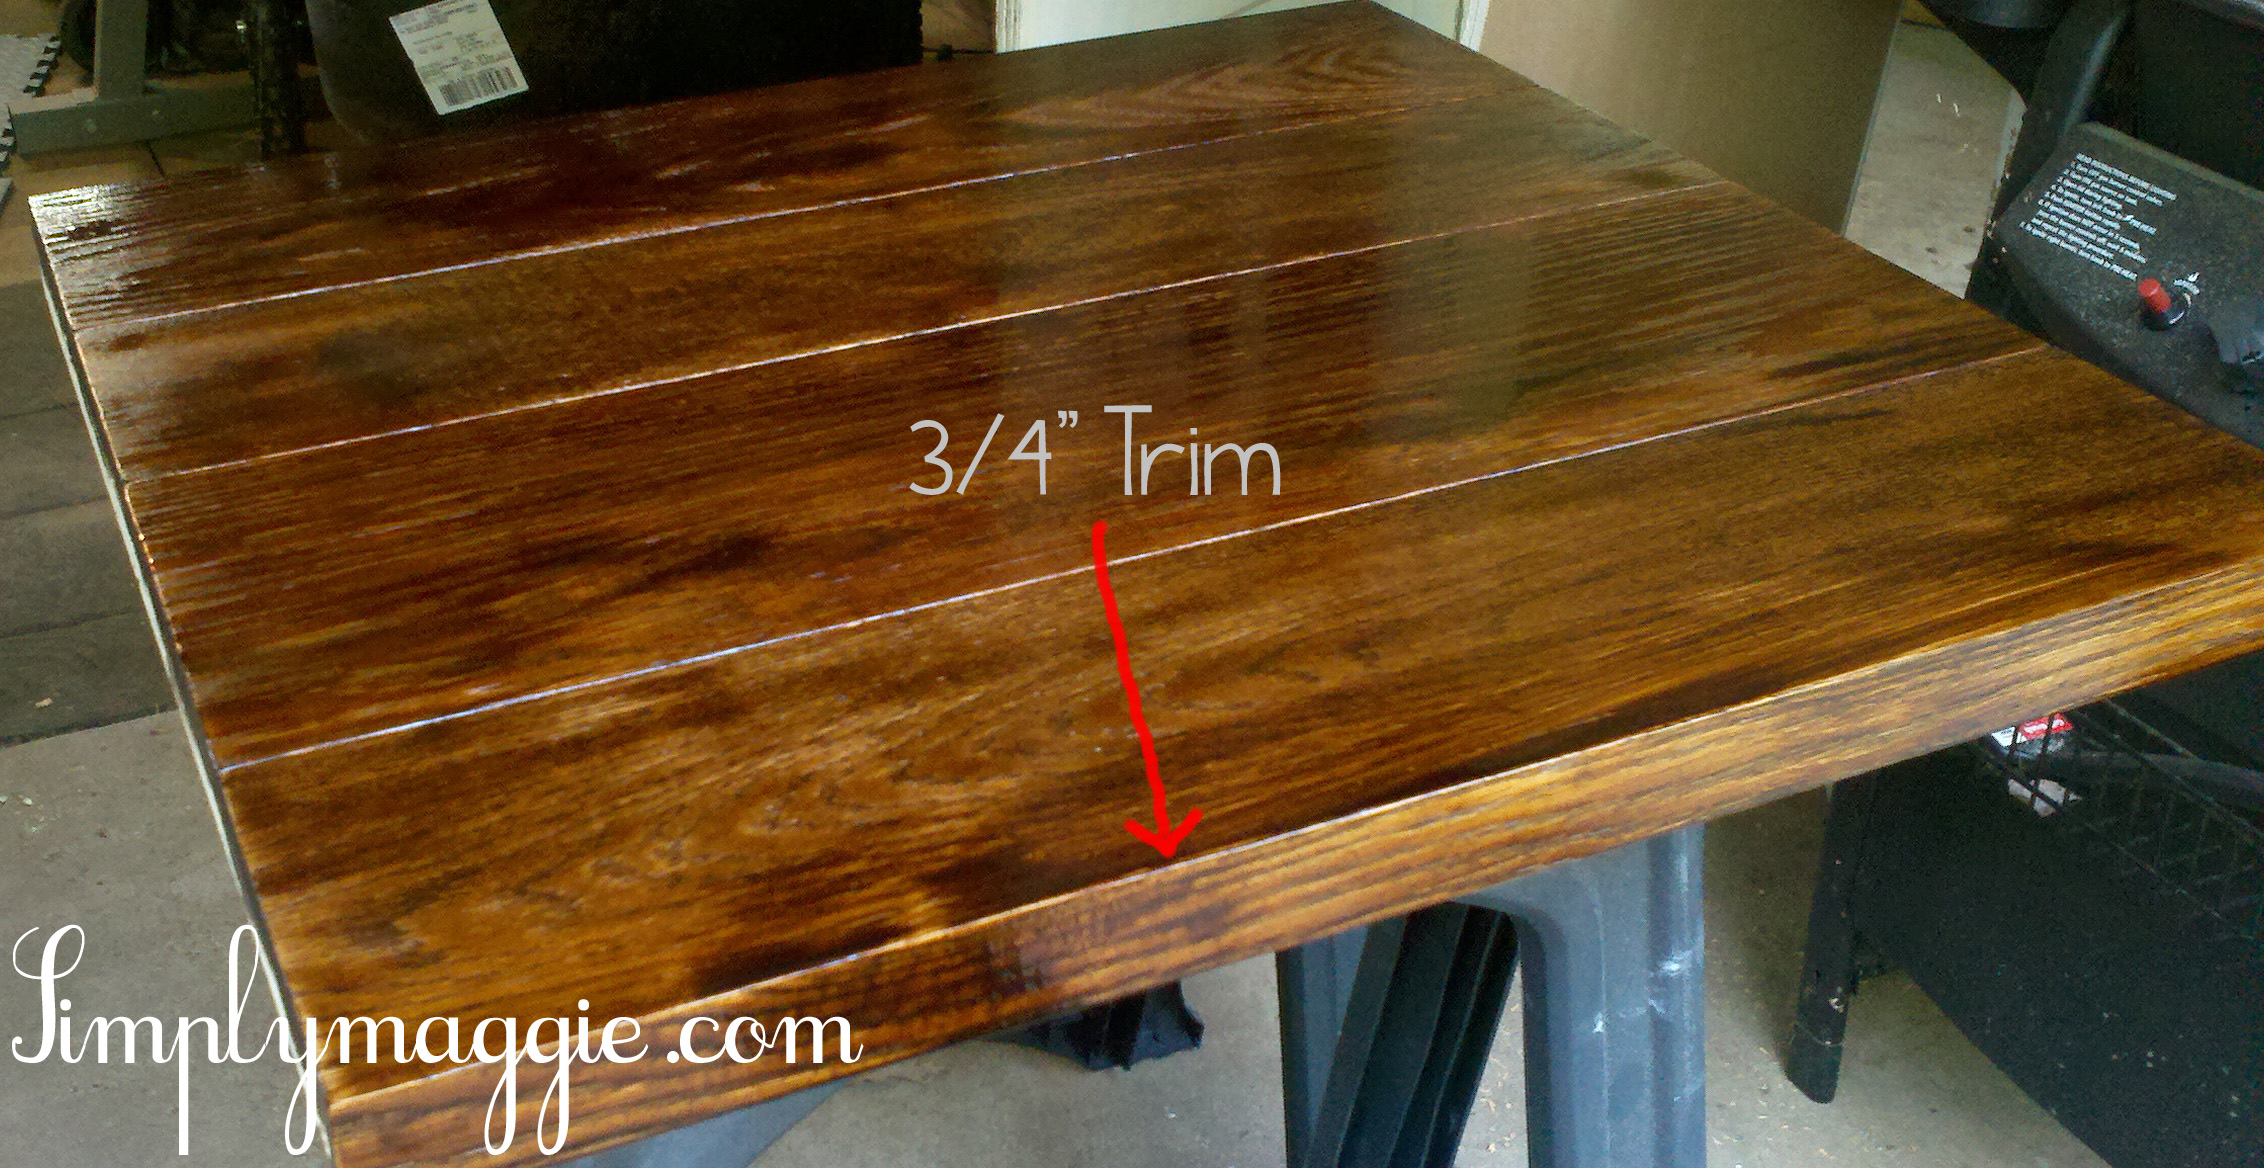 DIY Wide Plank Butcher Block Counter Tops SimplyMaggiecom : counters copy arrow from www.simplymaggie.com size 2264 x 1168 jpeg 1021kB